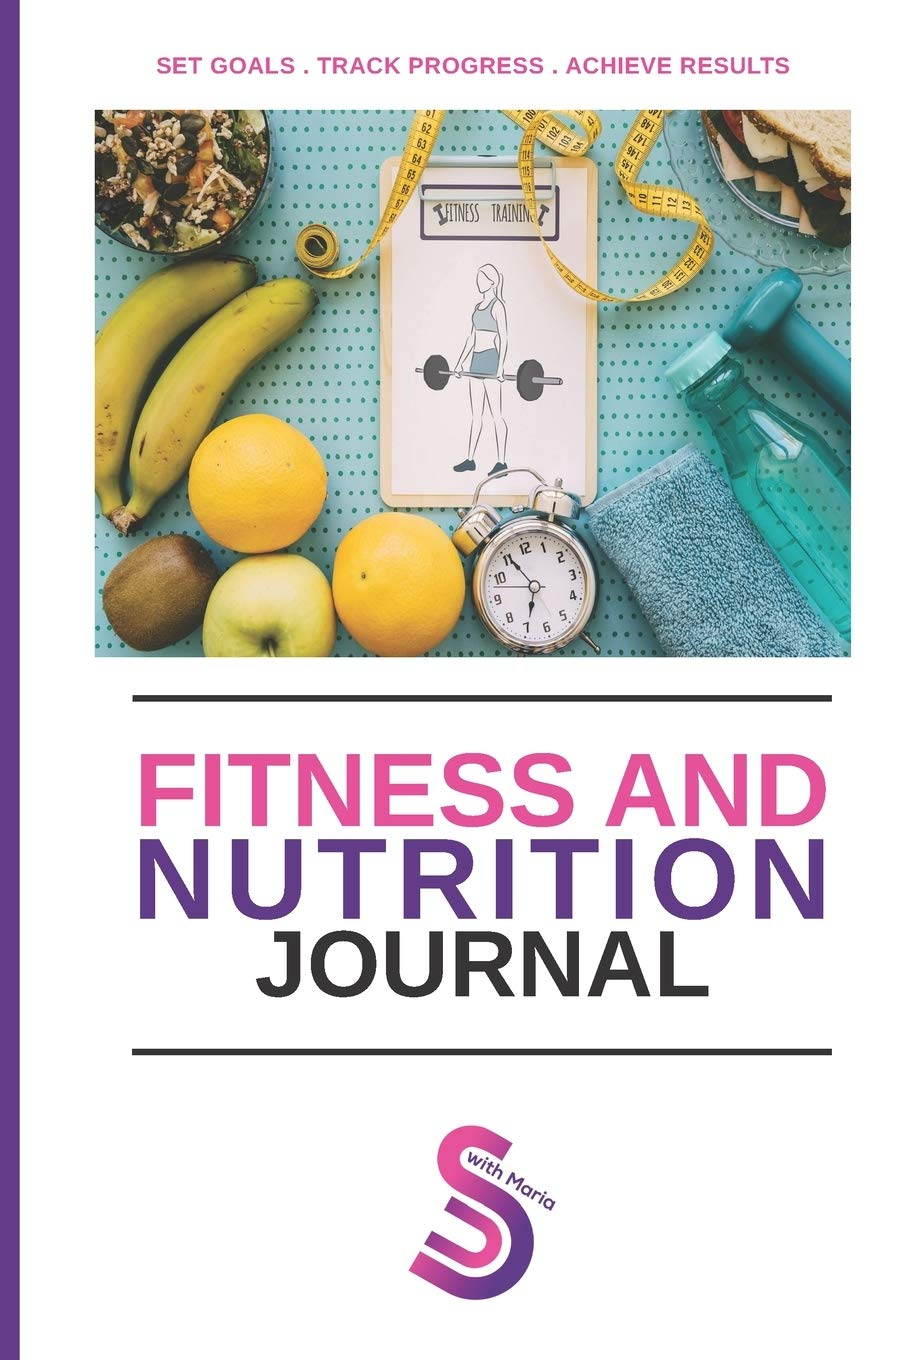 Fitness And Nutrition Journal: 4 Month Journal. Set Goals, Track Daily Progress and Achieve Your Results With The ShapeUp With Maria Journal